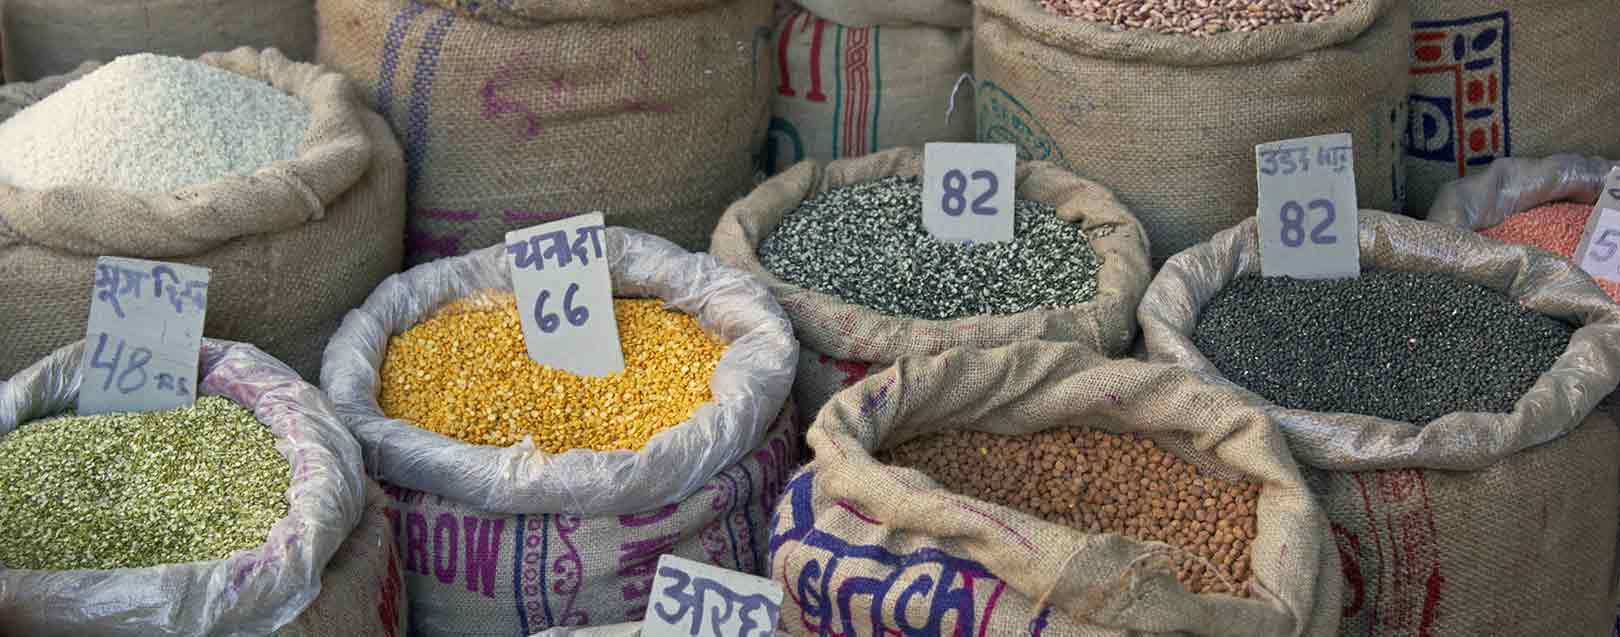 Govt to release unmilled dal to curb price rise